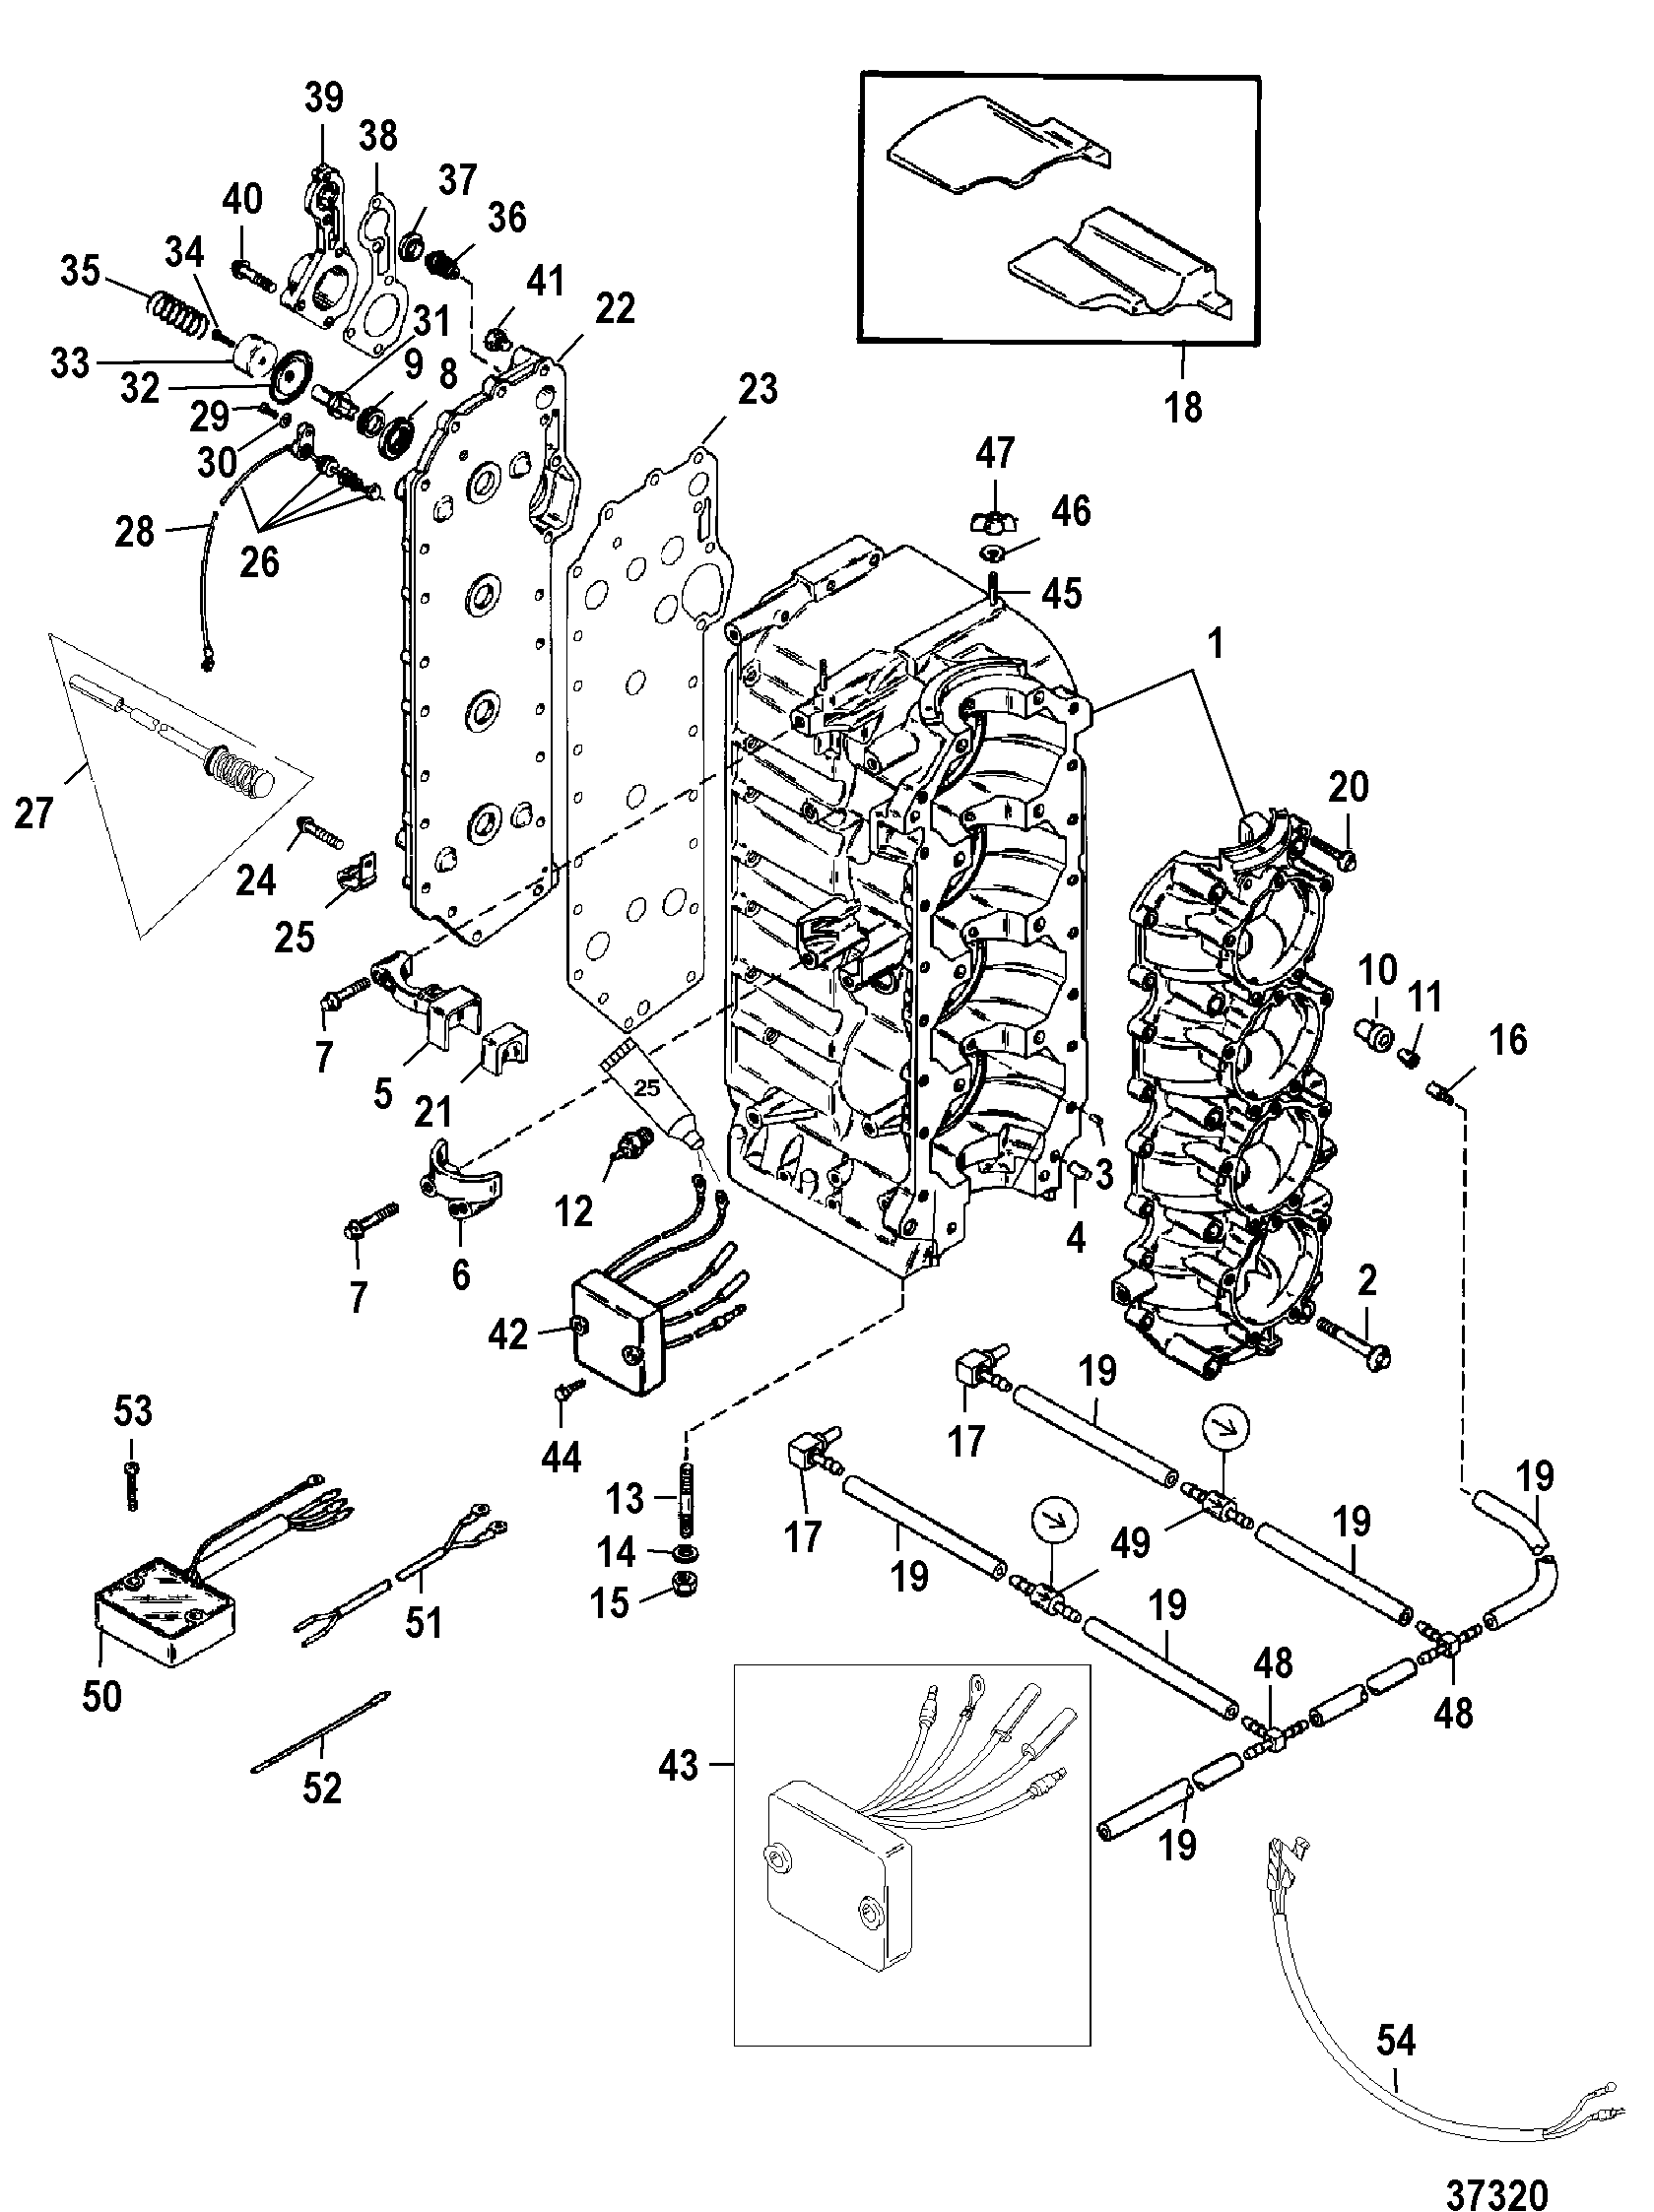 60 Degree V4 Engine Diagram